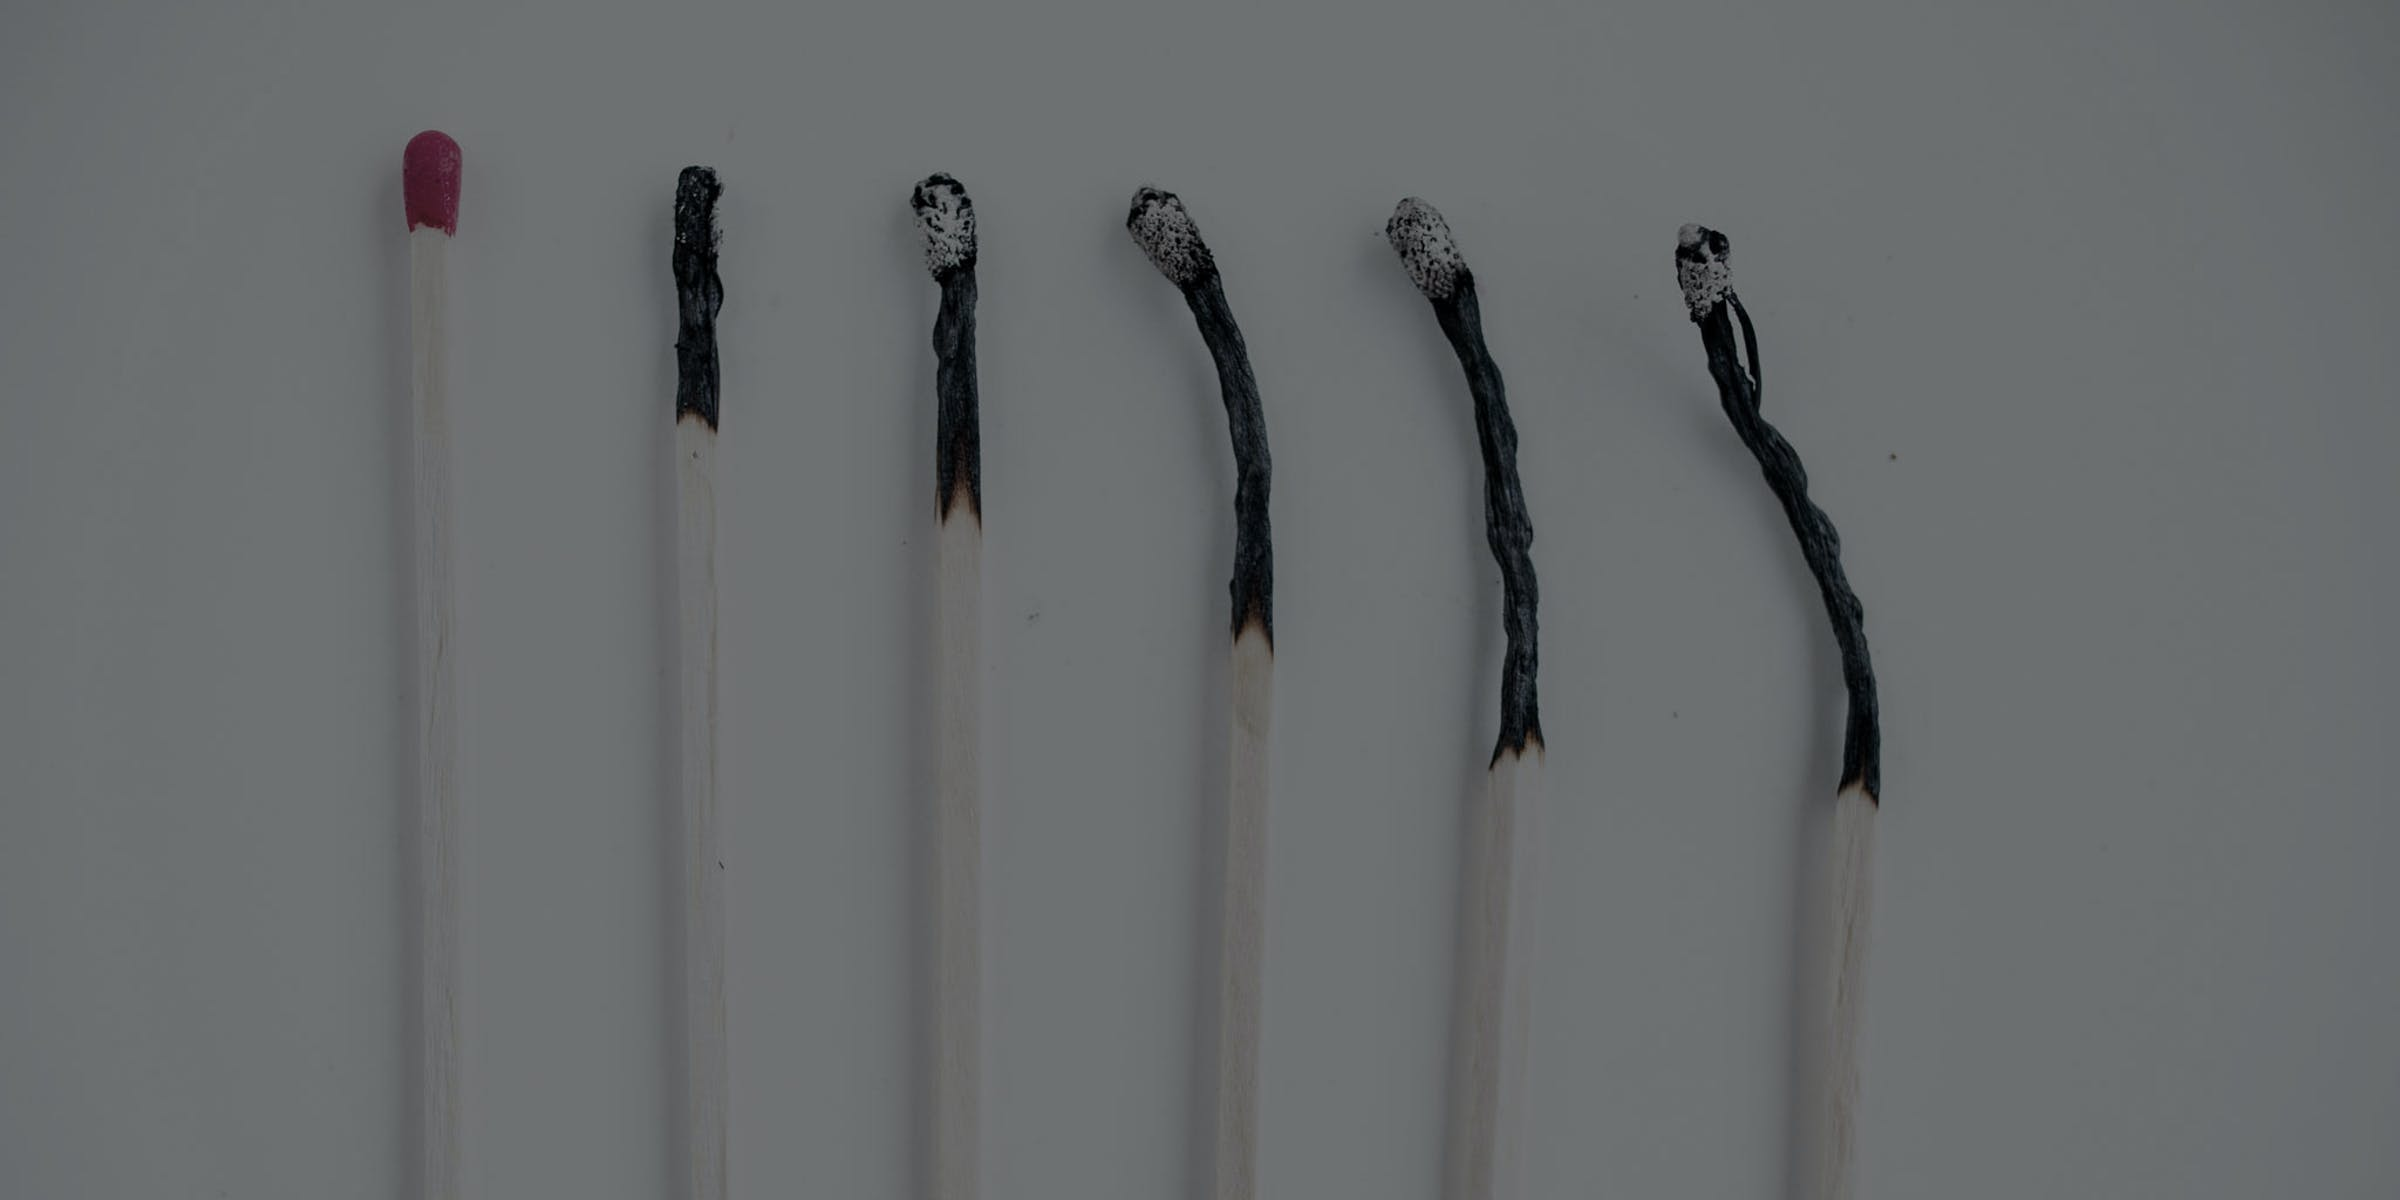 Concept shot of fire matches and burned matches